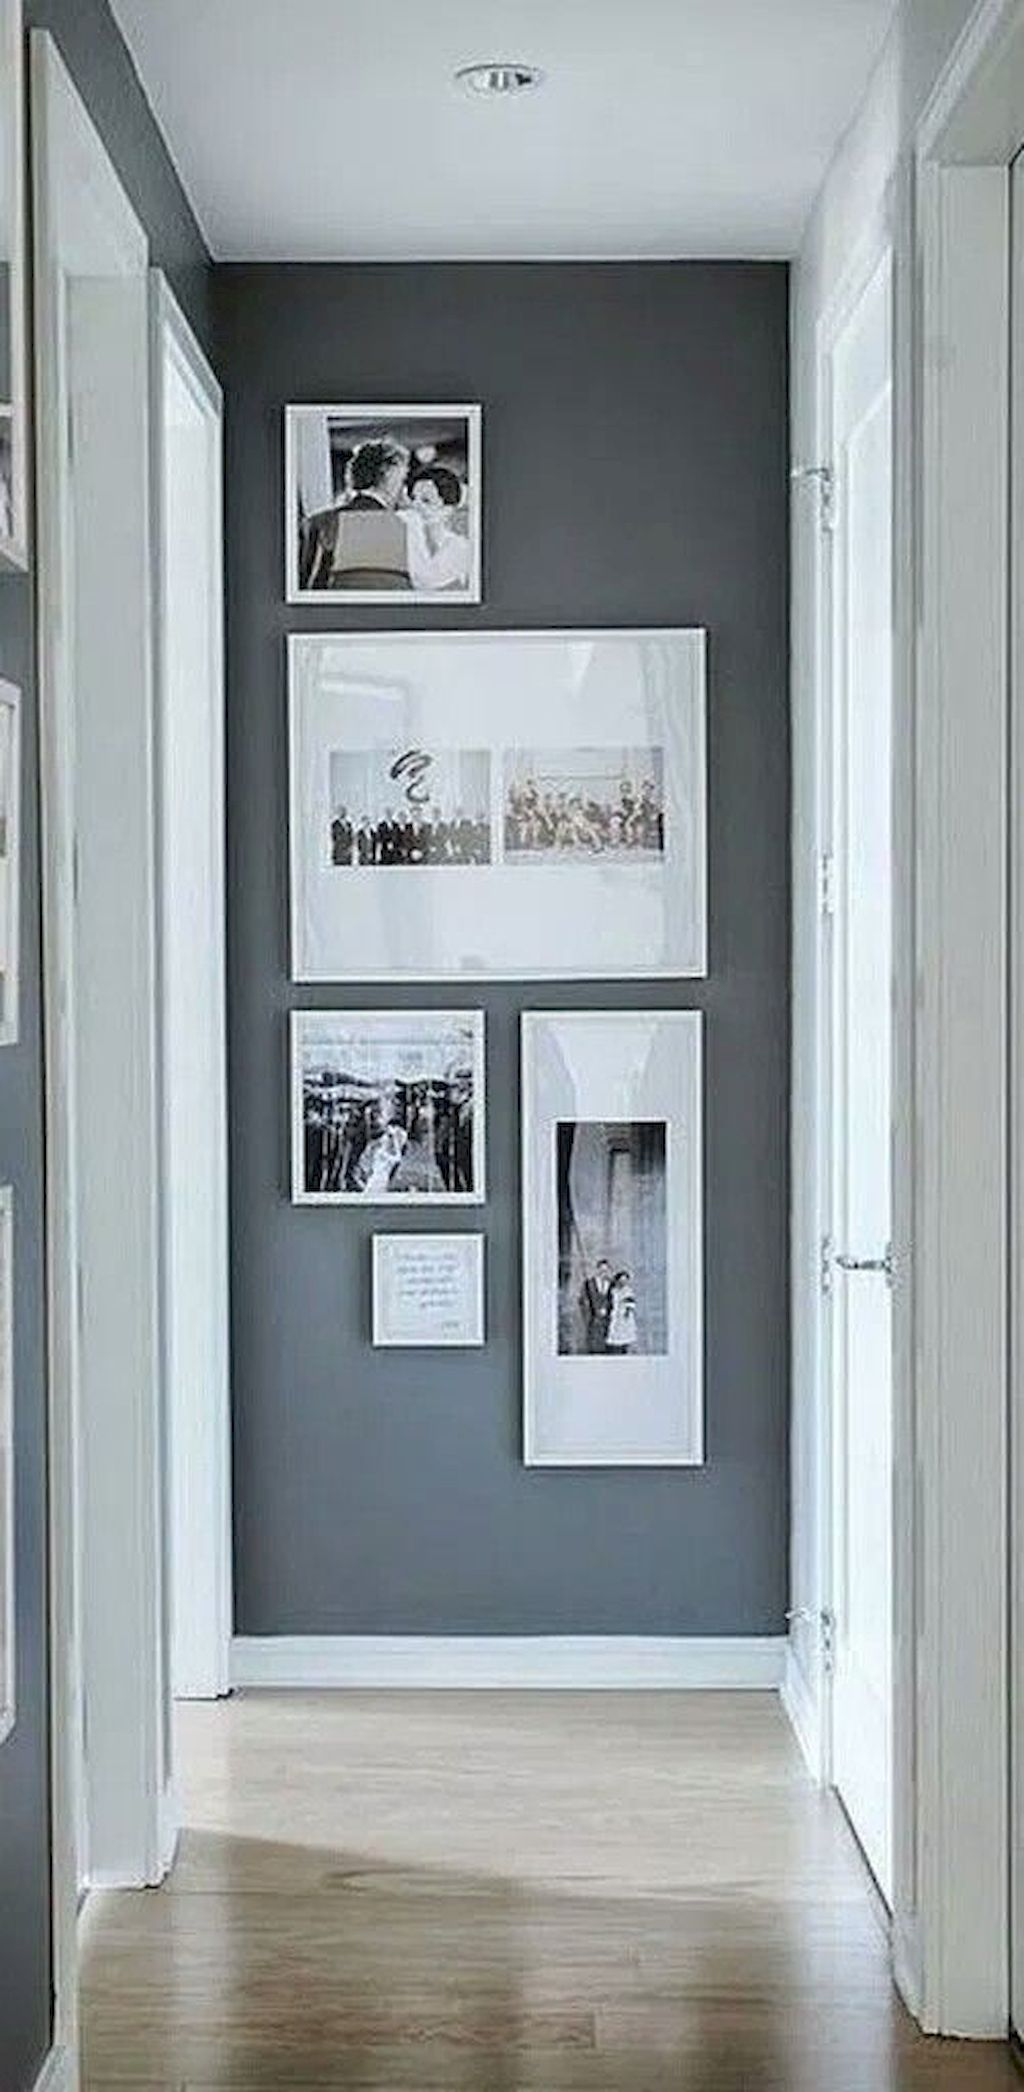 Photo of Artful Wall Accent to Improve Your Interior Look Part 23 | Elonahome.com